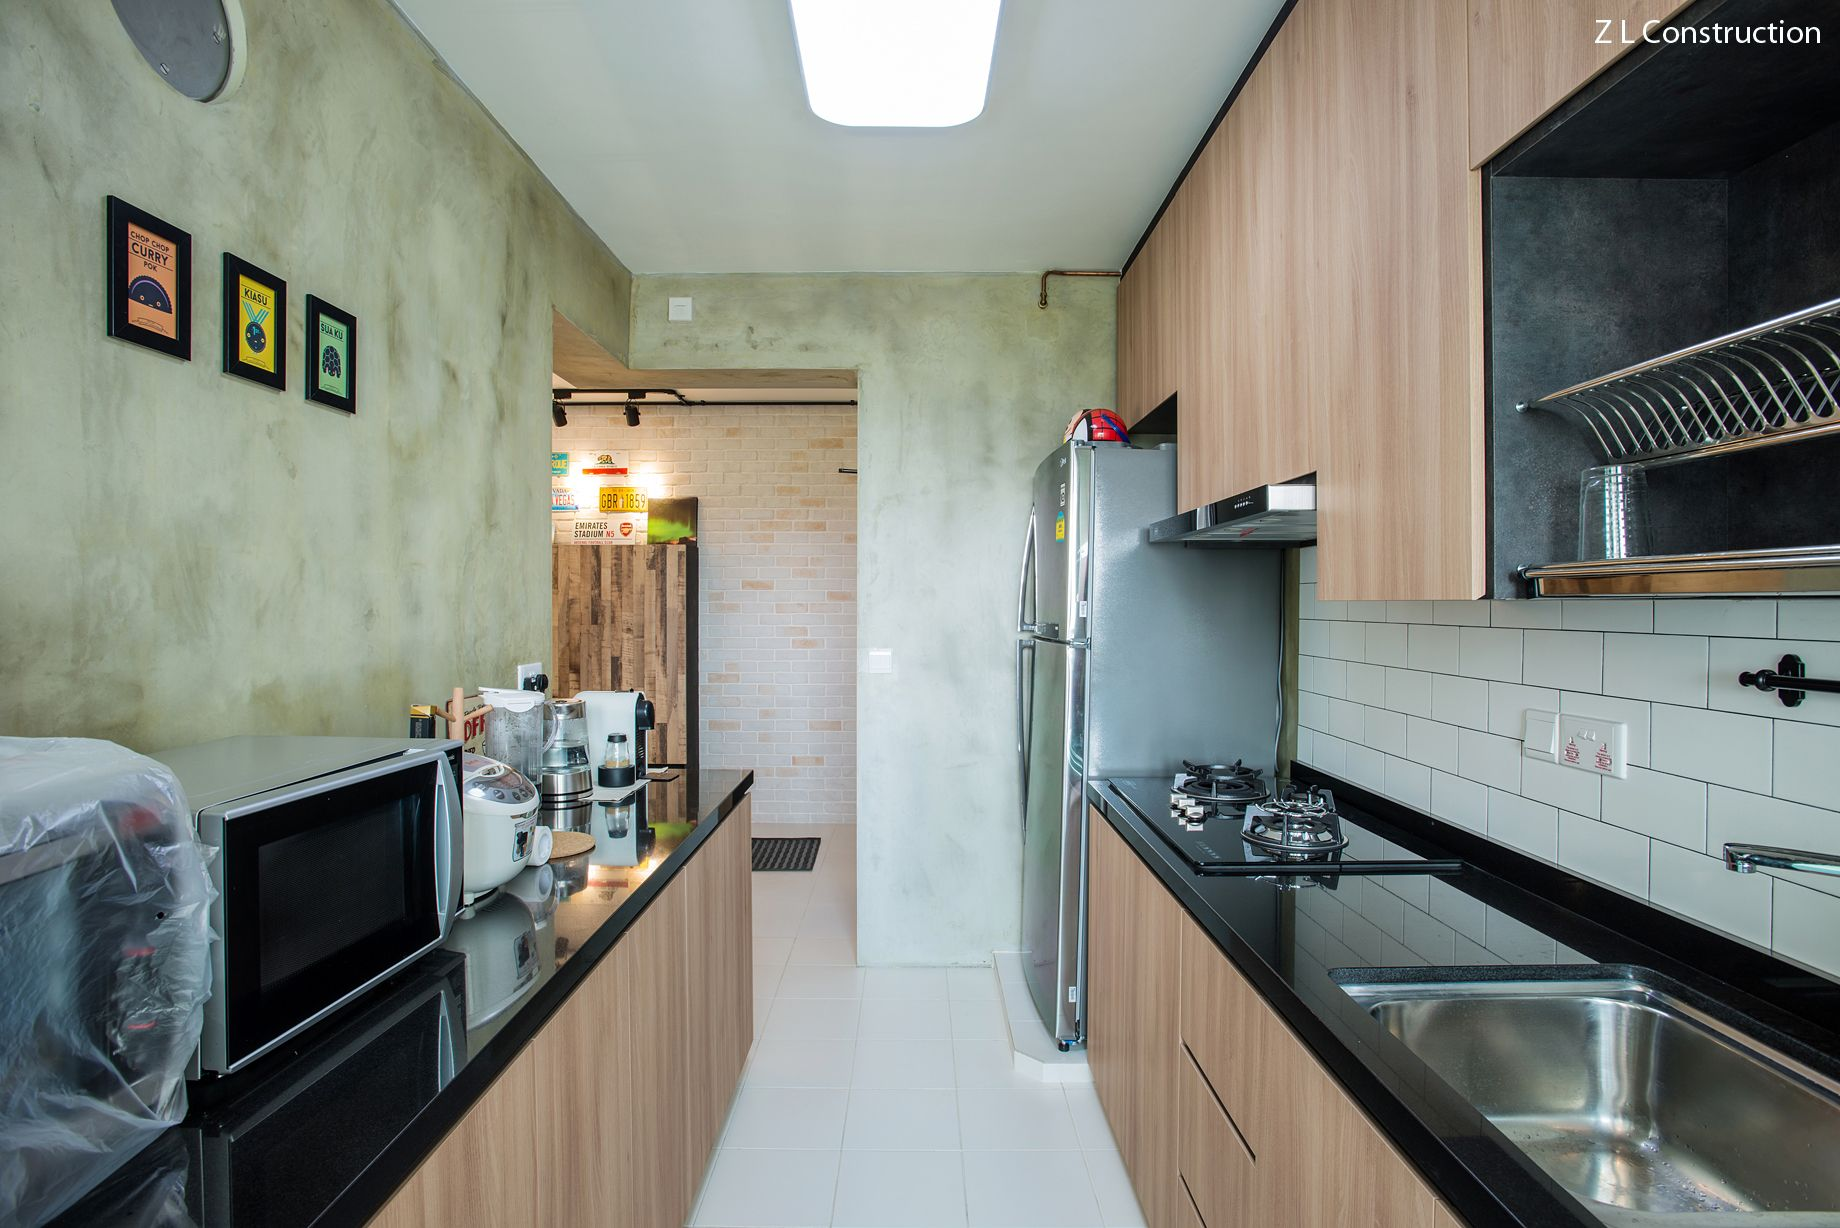 Z L Construction (Singapore) // Kitchen Cabinets Topped